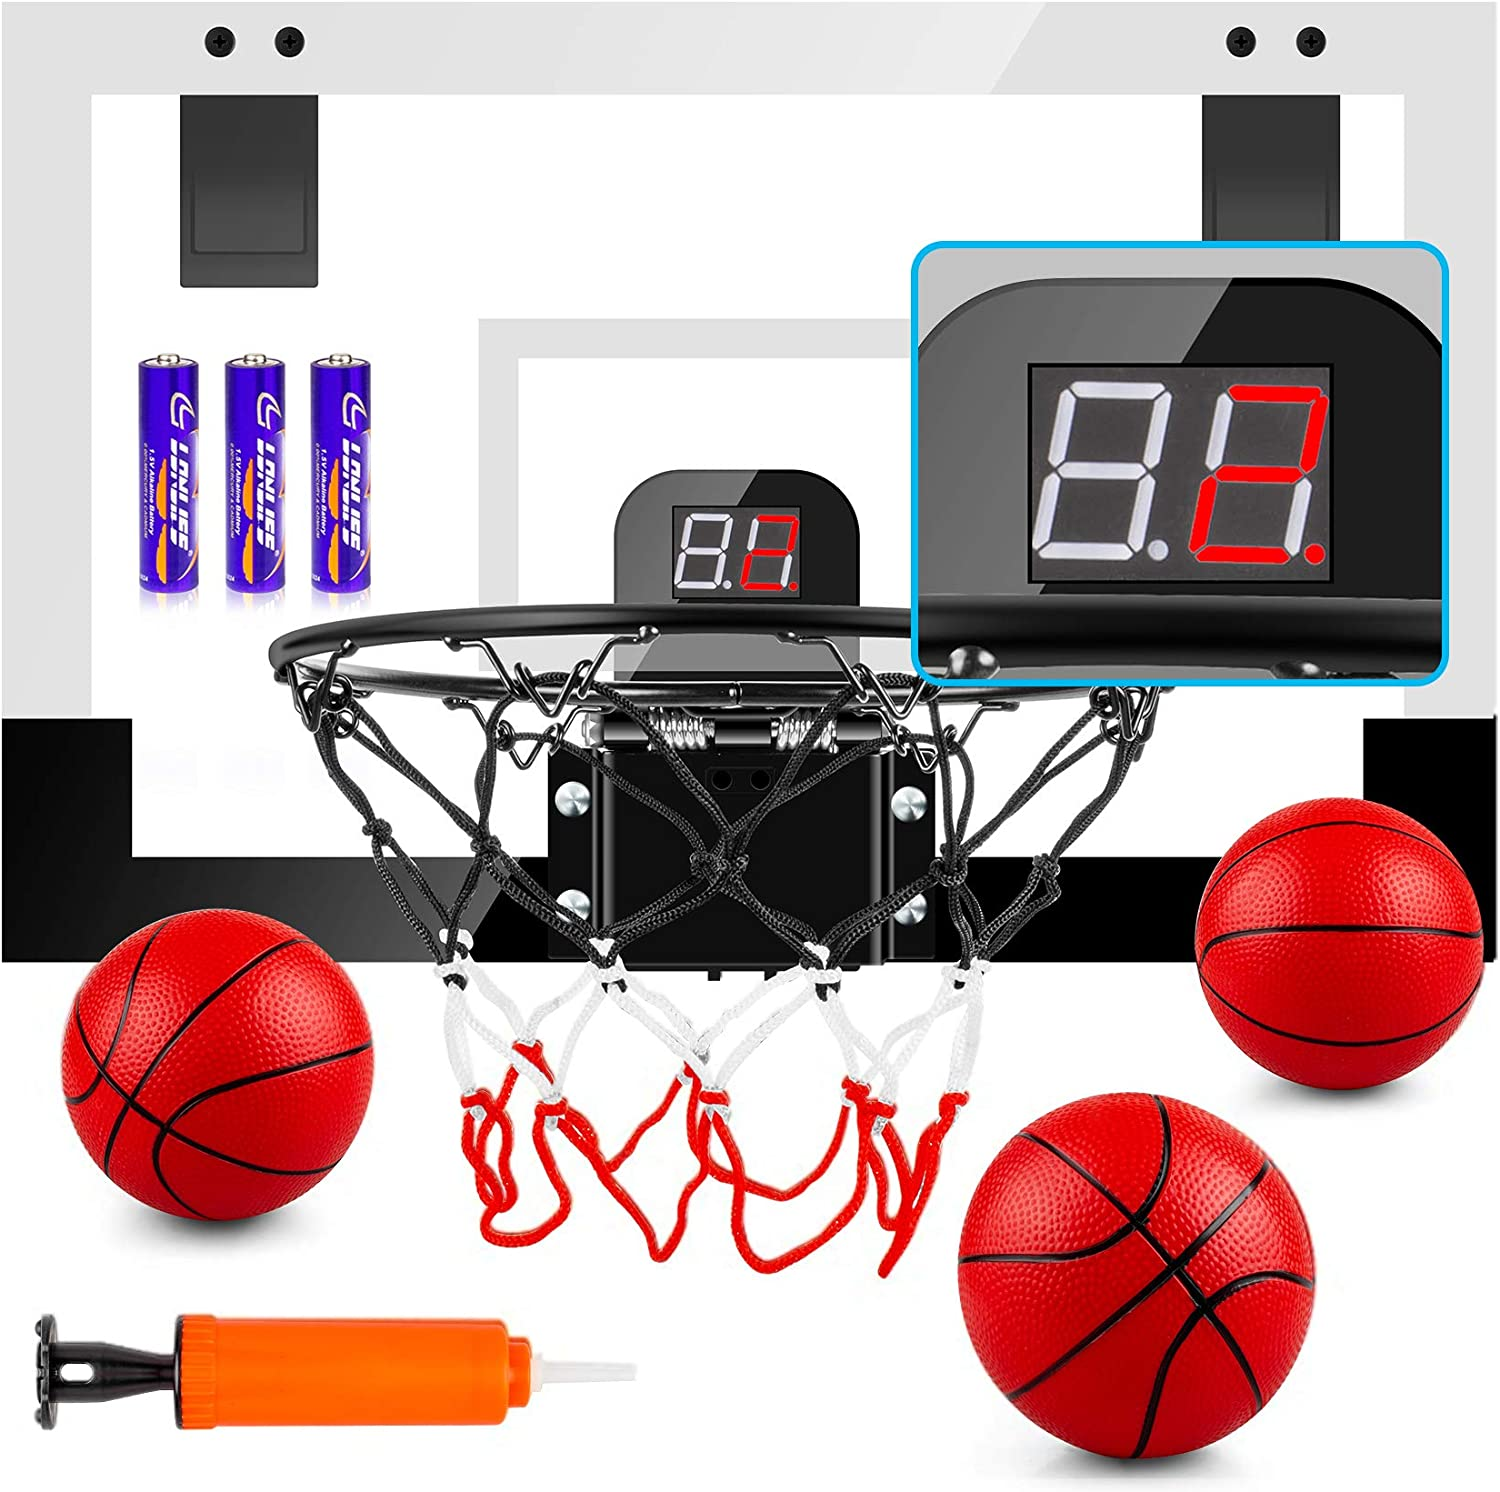 """TREYWELL Indoor Mini Basketball Hoop for Kids and Adults, 17""""X13"""" Basketball Set for Door Wall Room with 3 Balls & Electronic Scoreboard - Basketball Toy Gifts for Boys Girls Teens"""